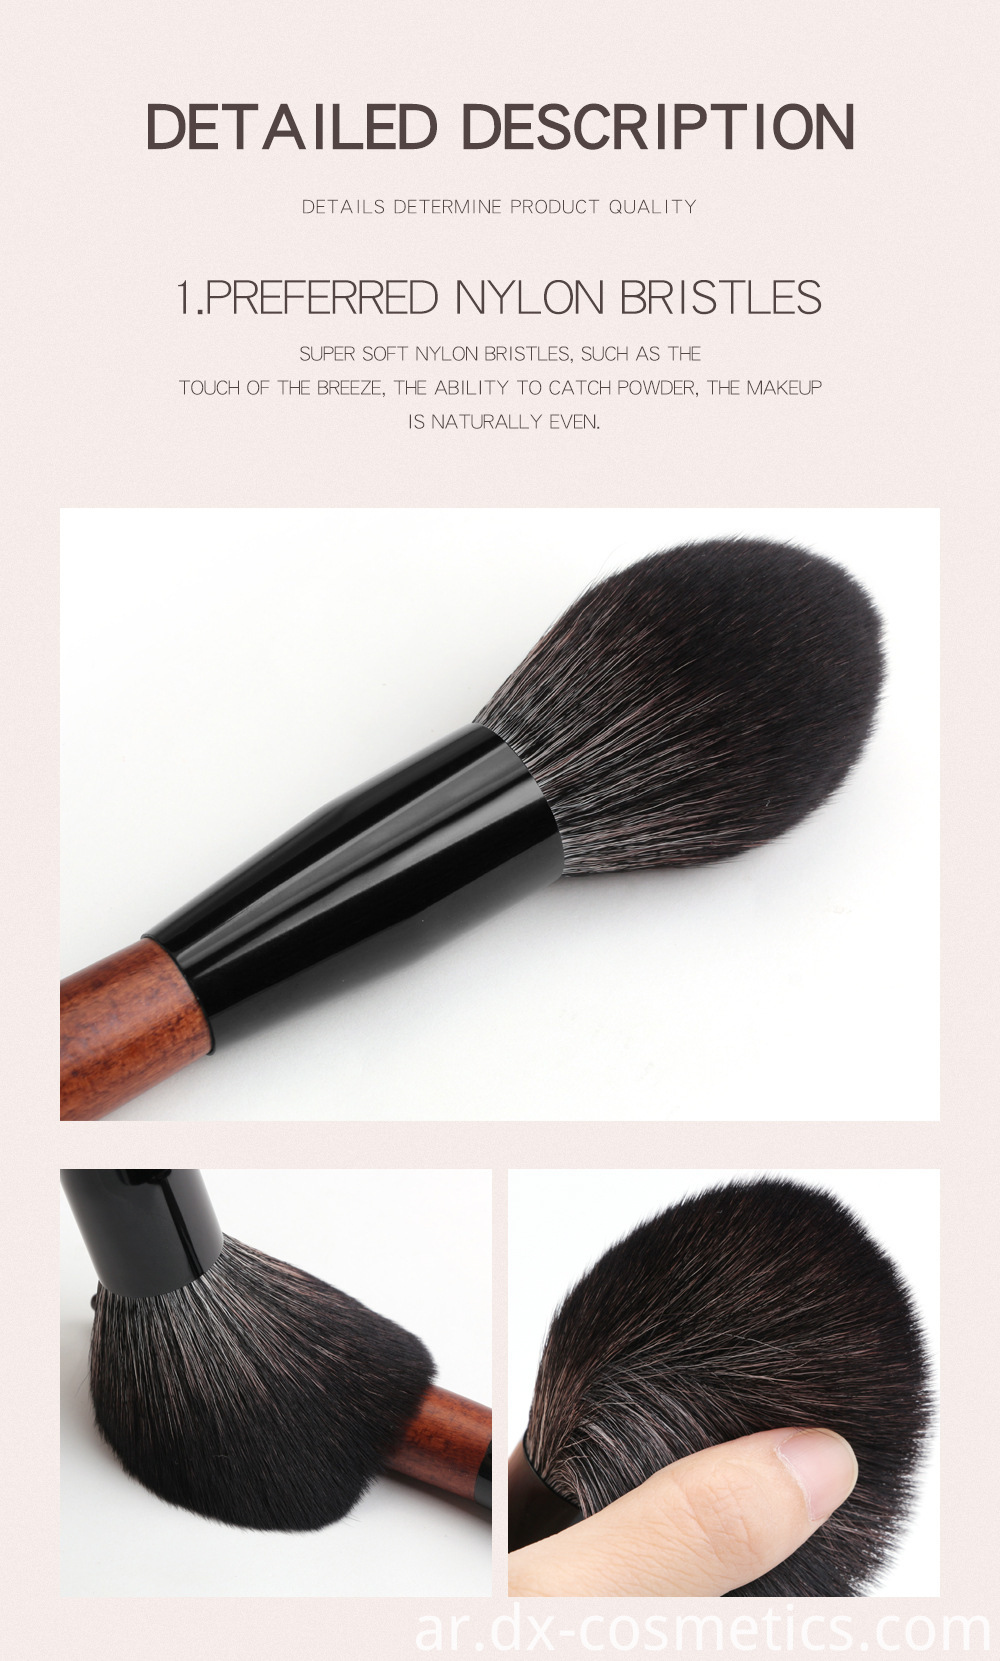 12 Pieces Sandalwood Color Makeup Brushes Set detail 1